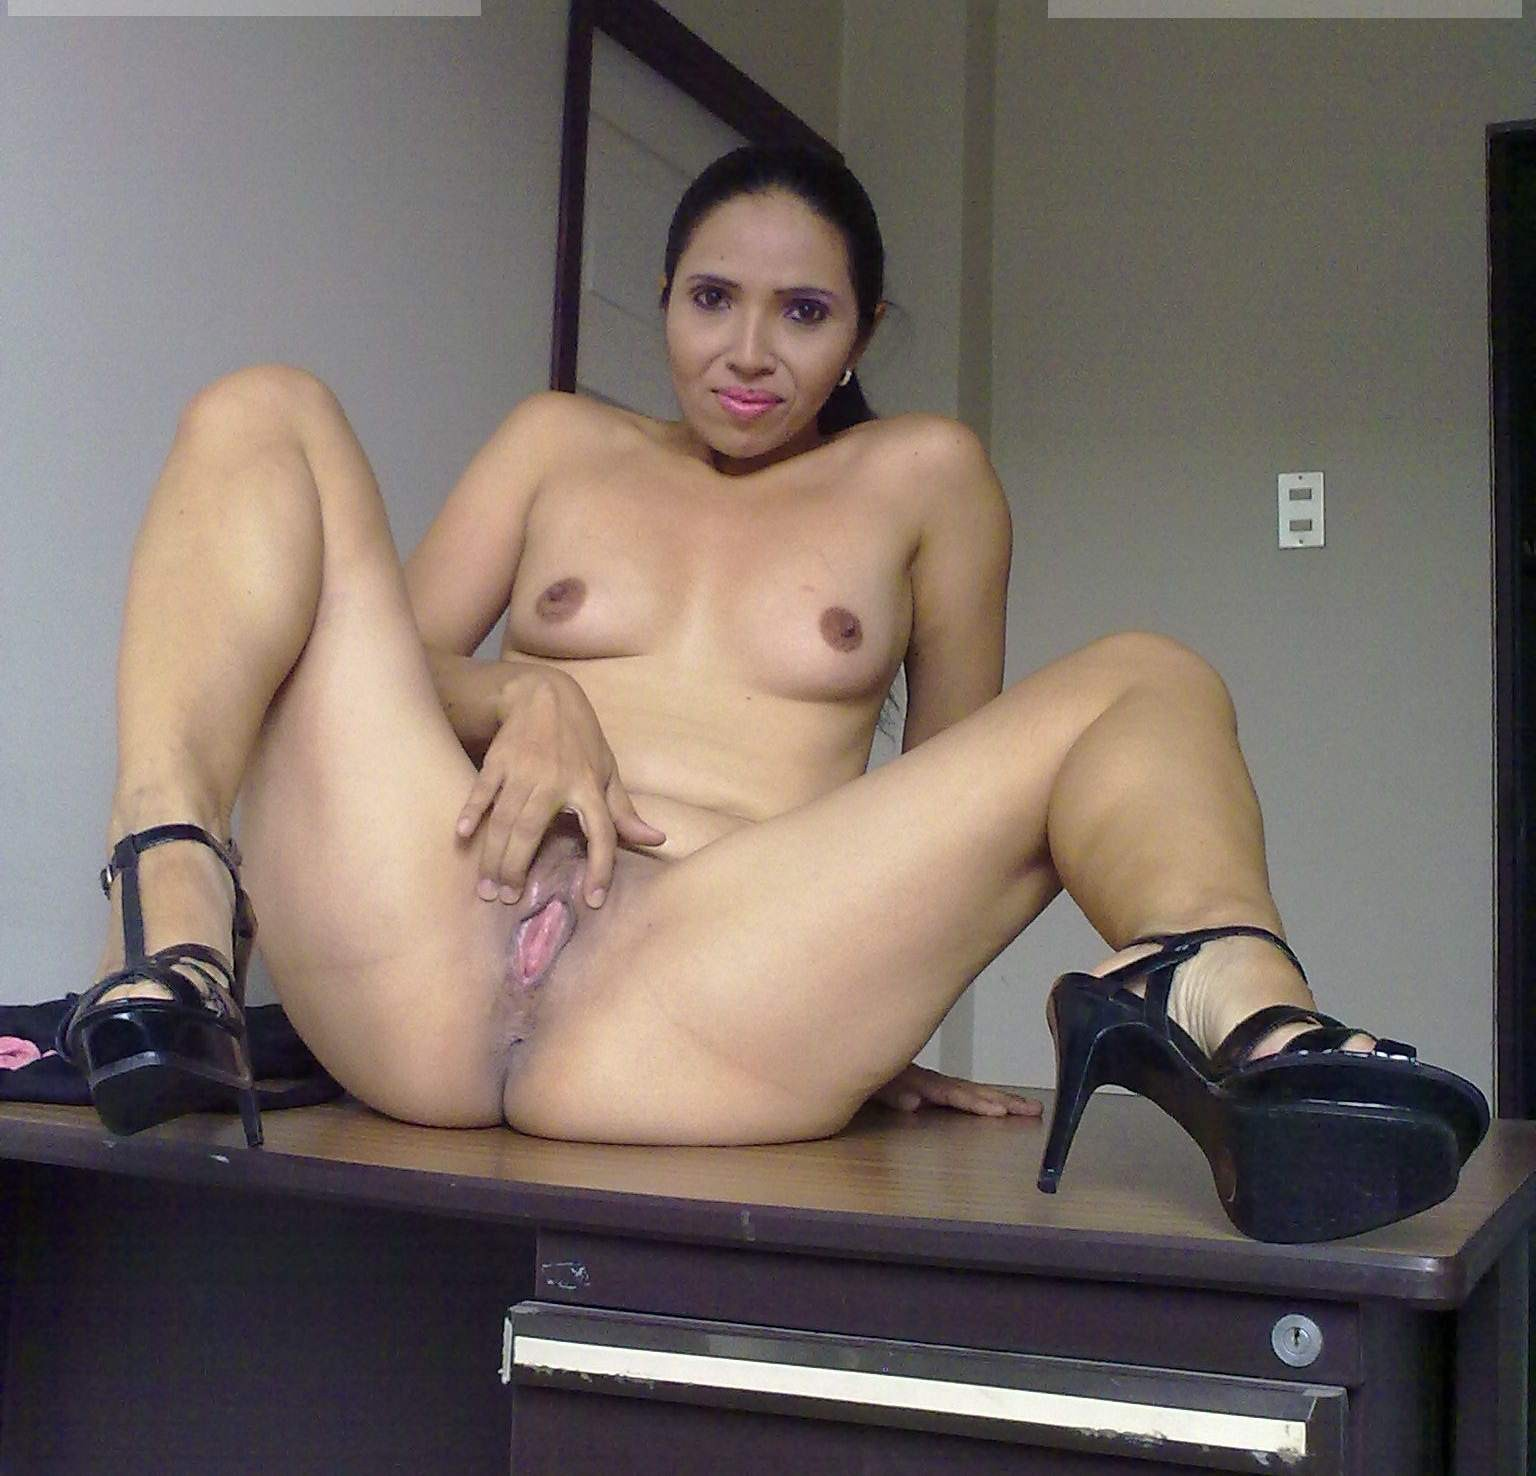 Milf hot mexican tight